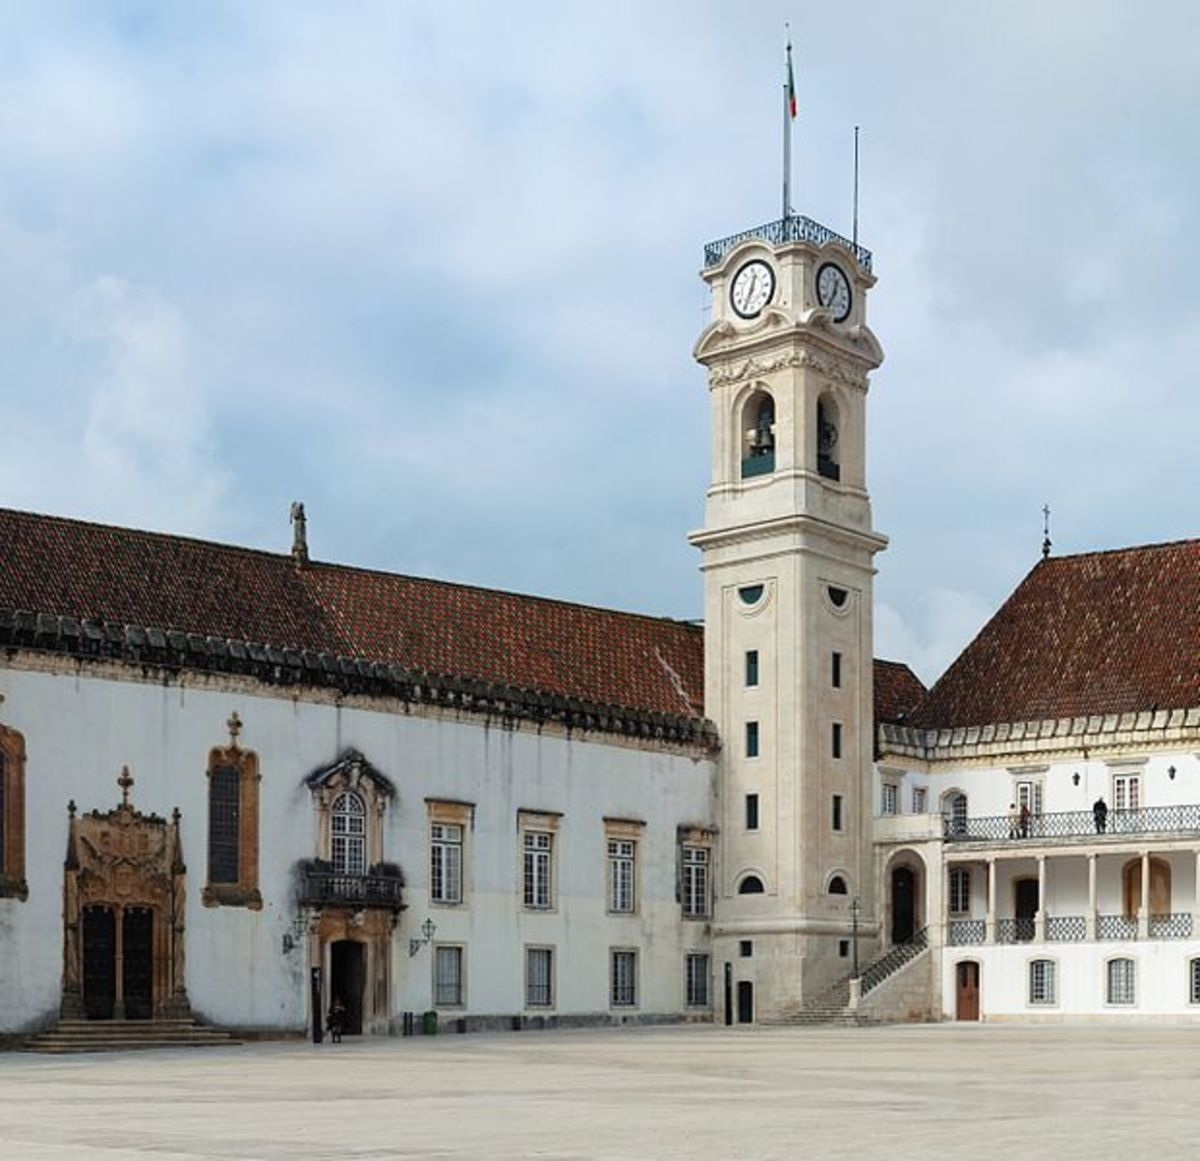 University of Coimbra is one of the oldest universities in Europe.